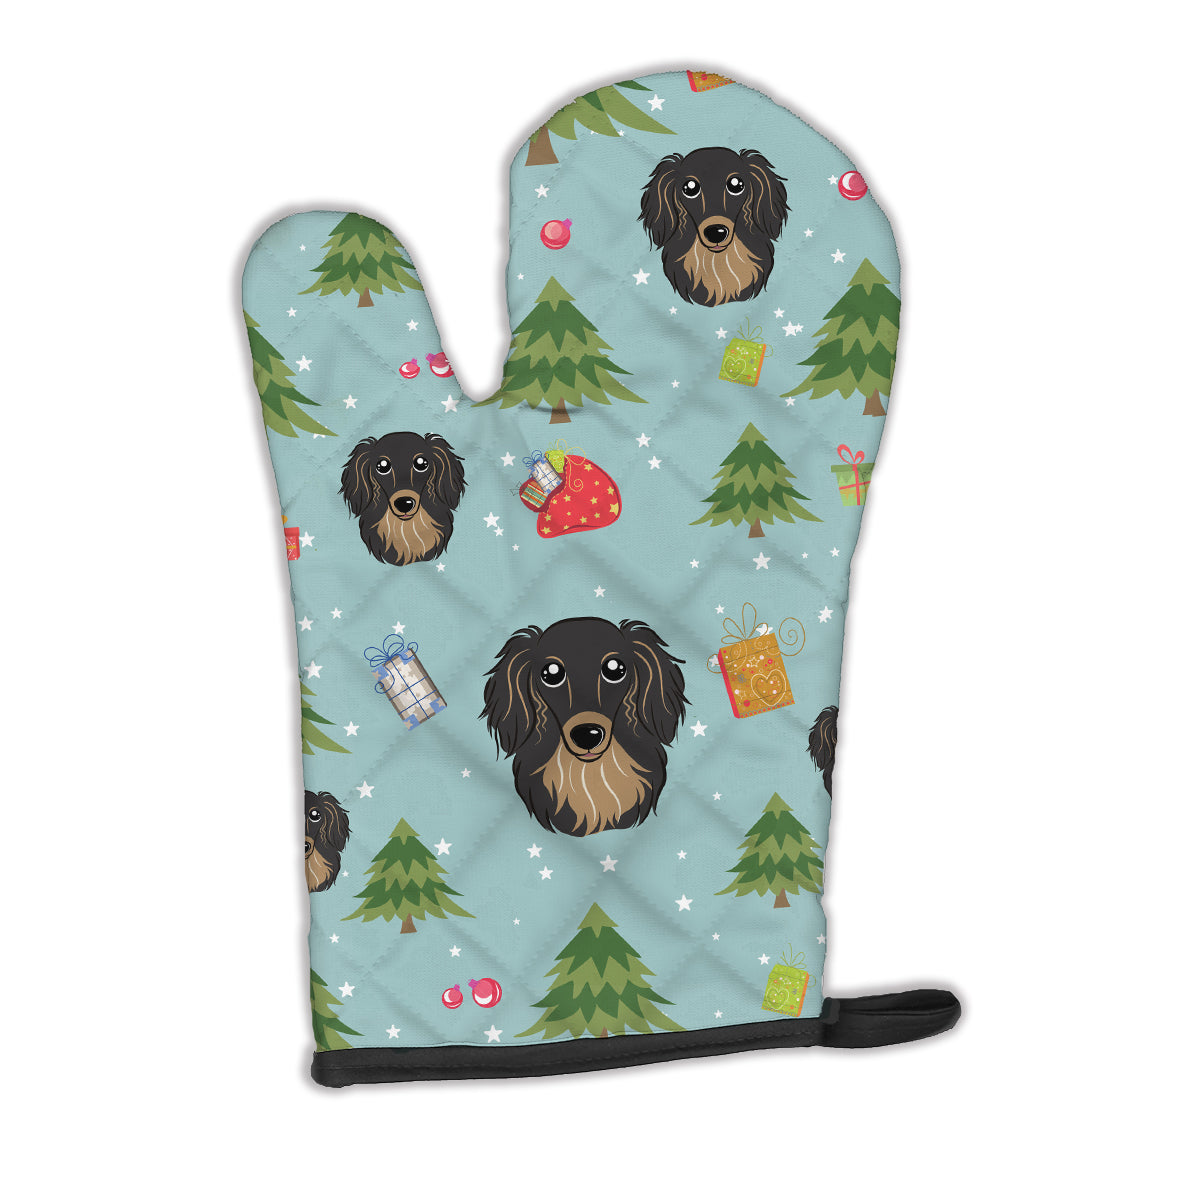 Buy this Christmas Longhair Black and Tan Dachshund Oven Mitt BB5002OVMT